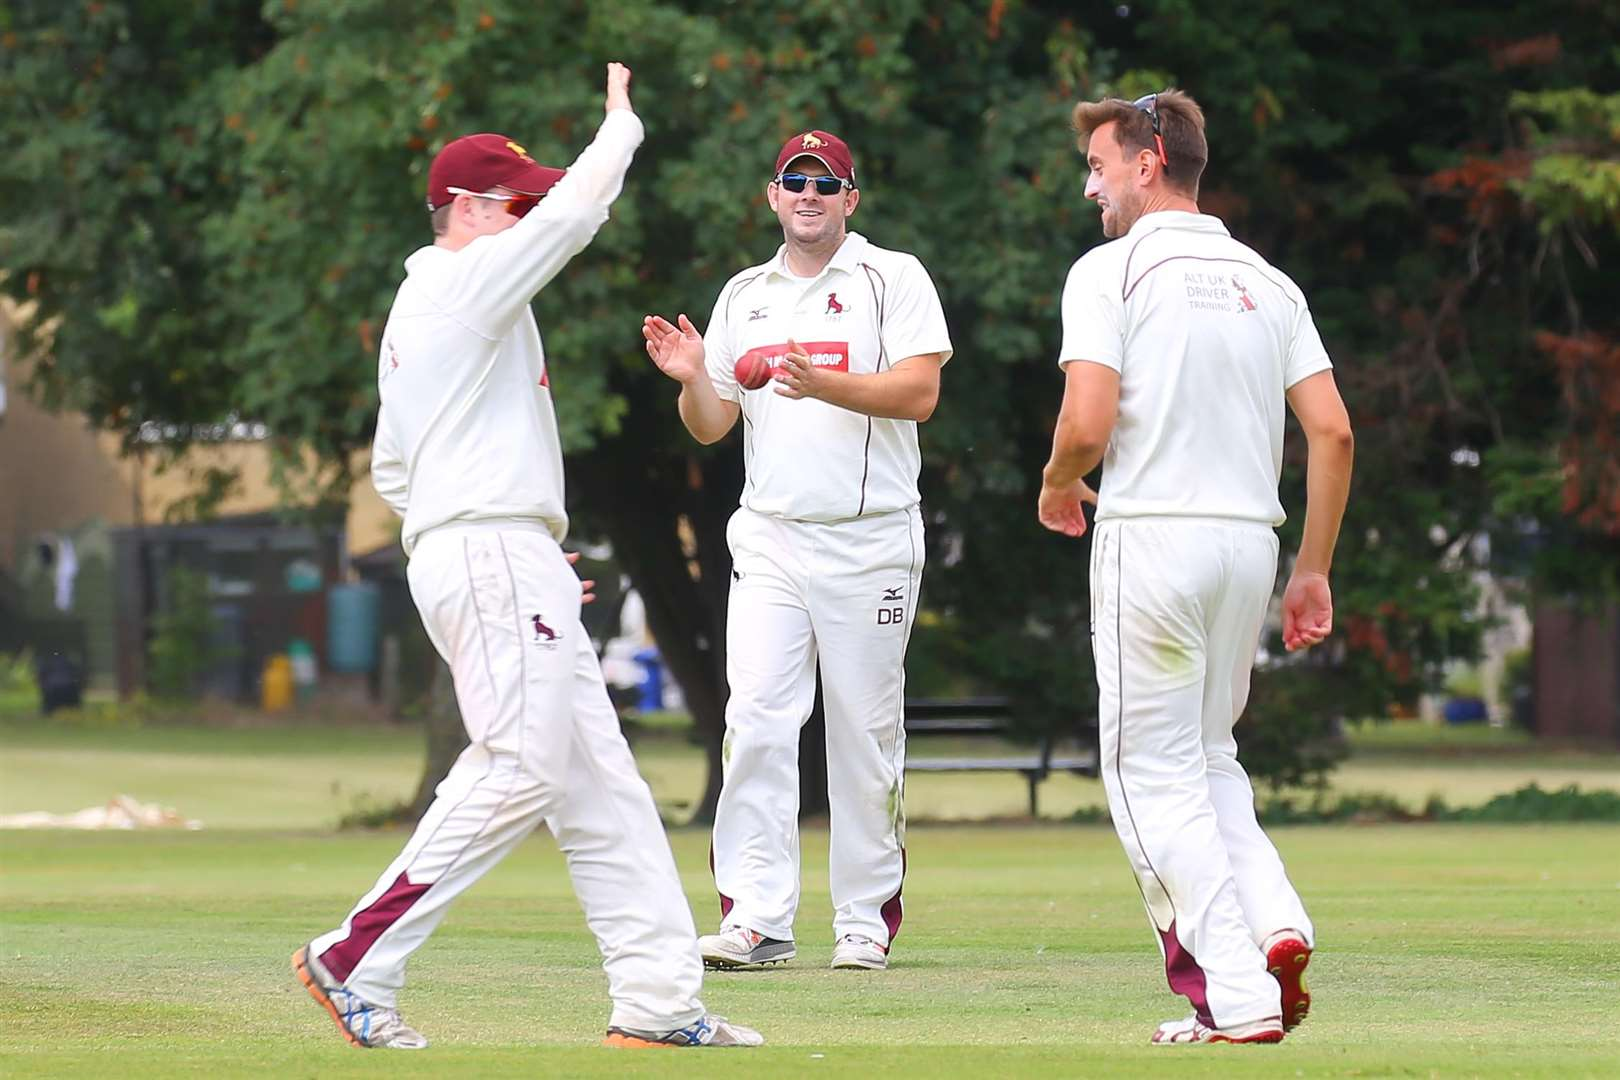 MBFP-06-08-2016-019 Bury v Sudbury Cricket Sudbury captain Darren Batch applaudes his teamates for taking another wicket Bury Free Press 06.08.2016. (2872360)